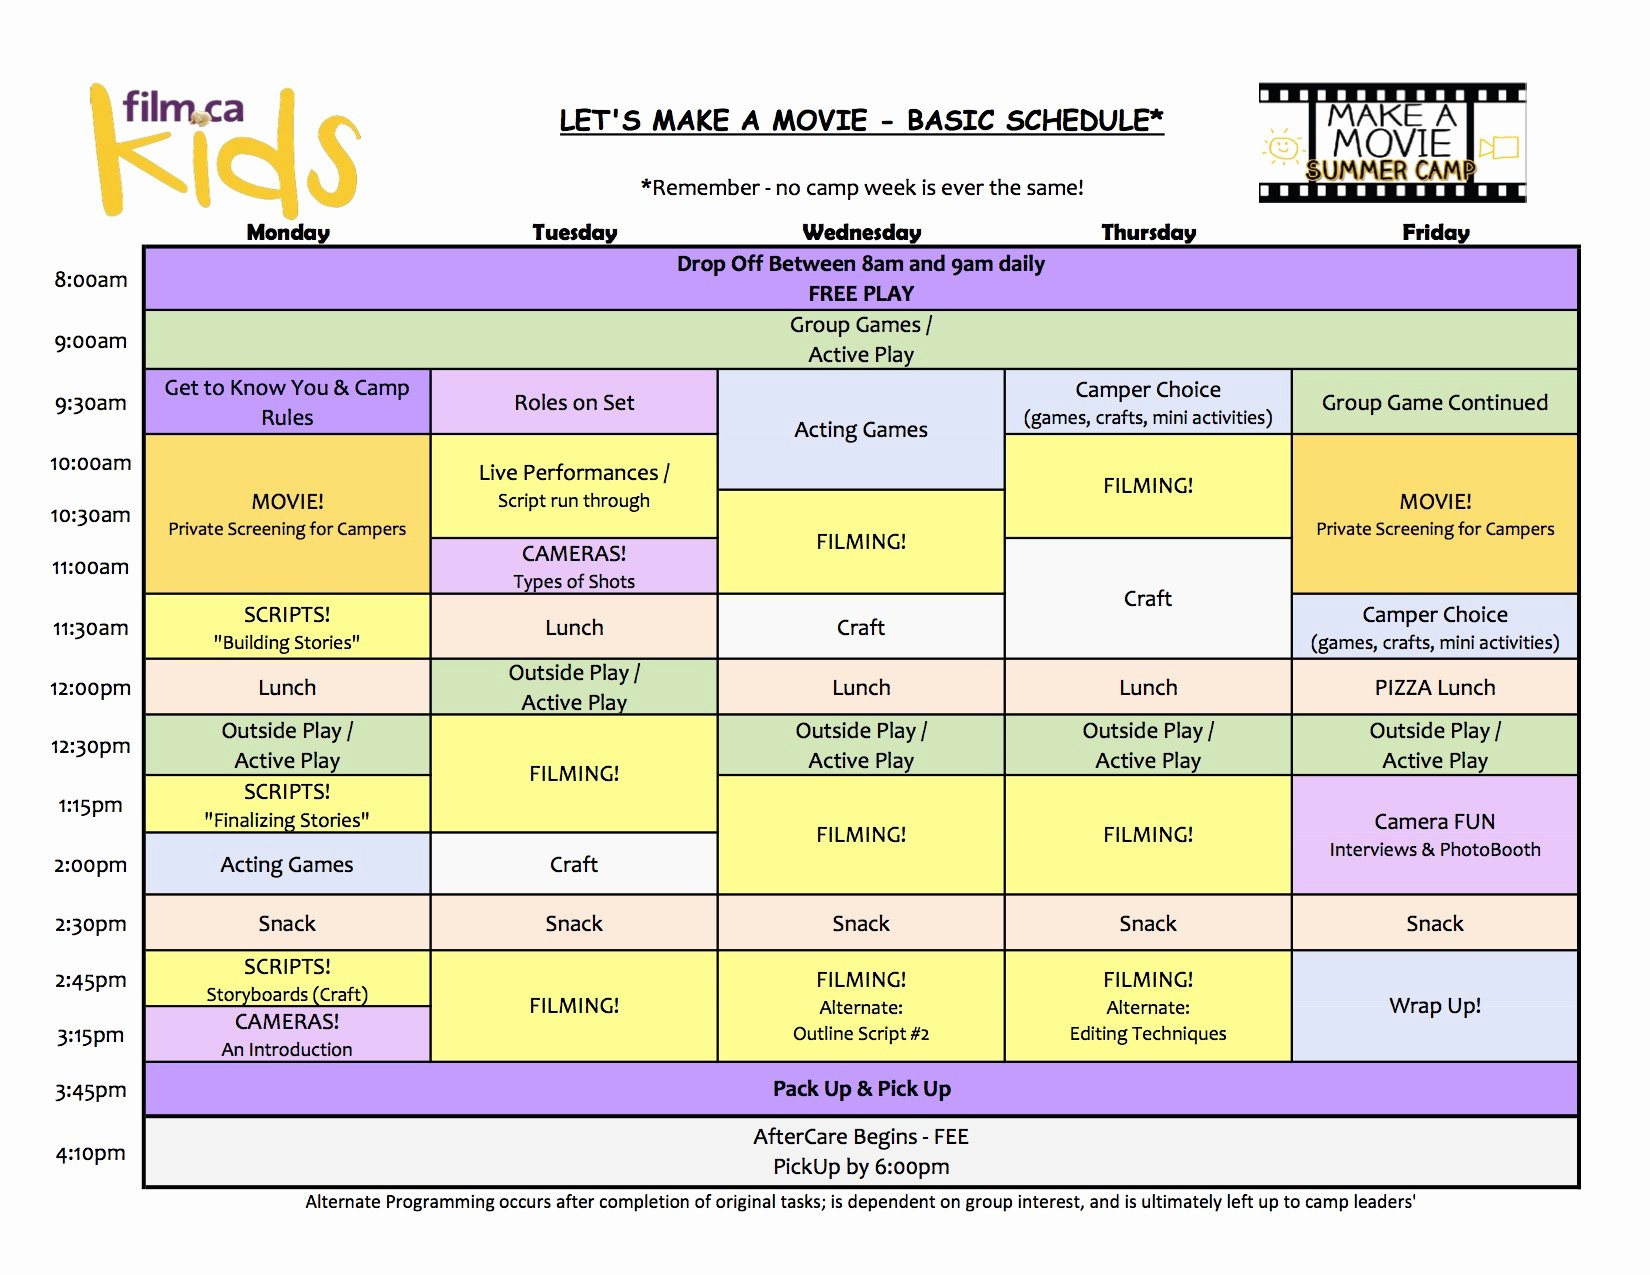 Sample Summer Camp Schedule Fresh Let S Make A Movie Camp Ca Cinemas In Oakville On